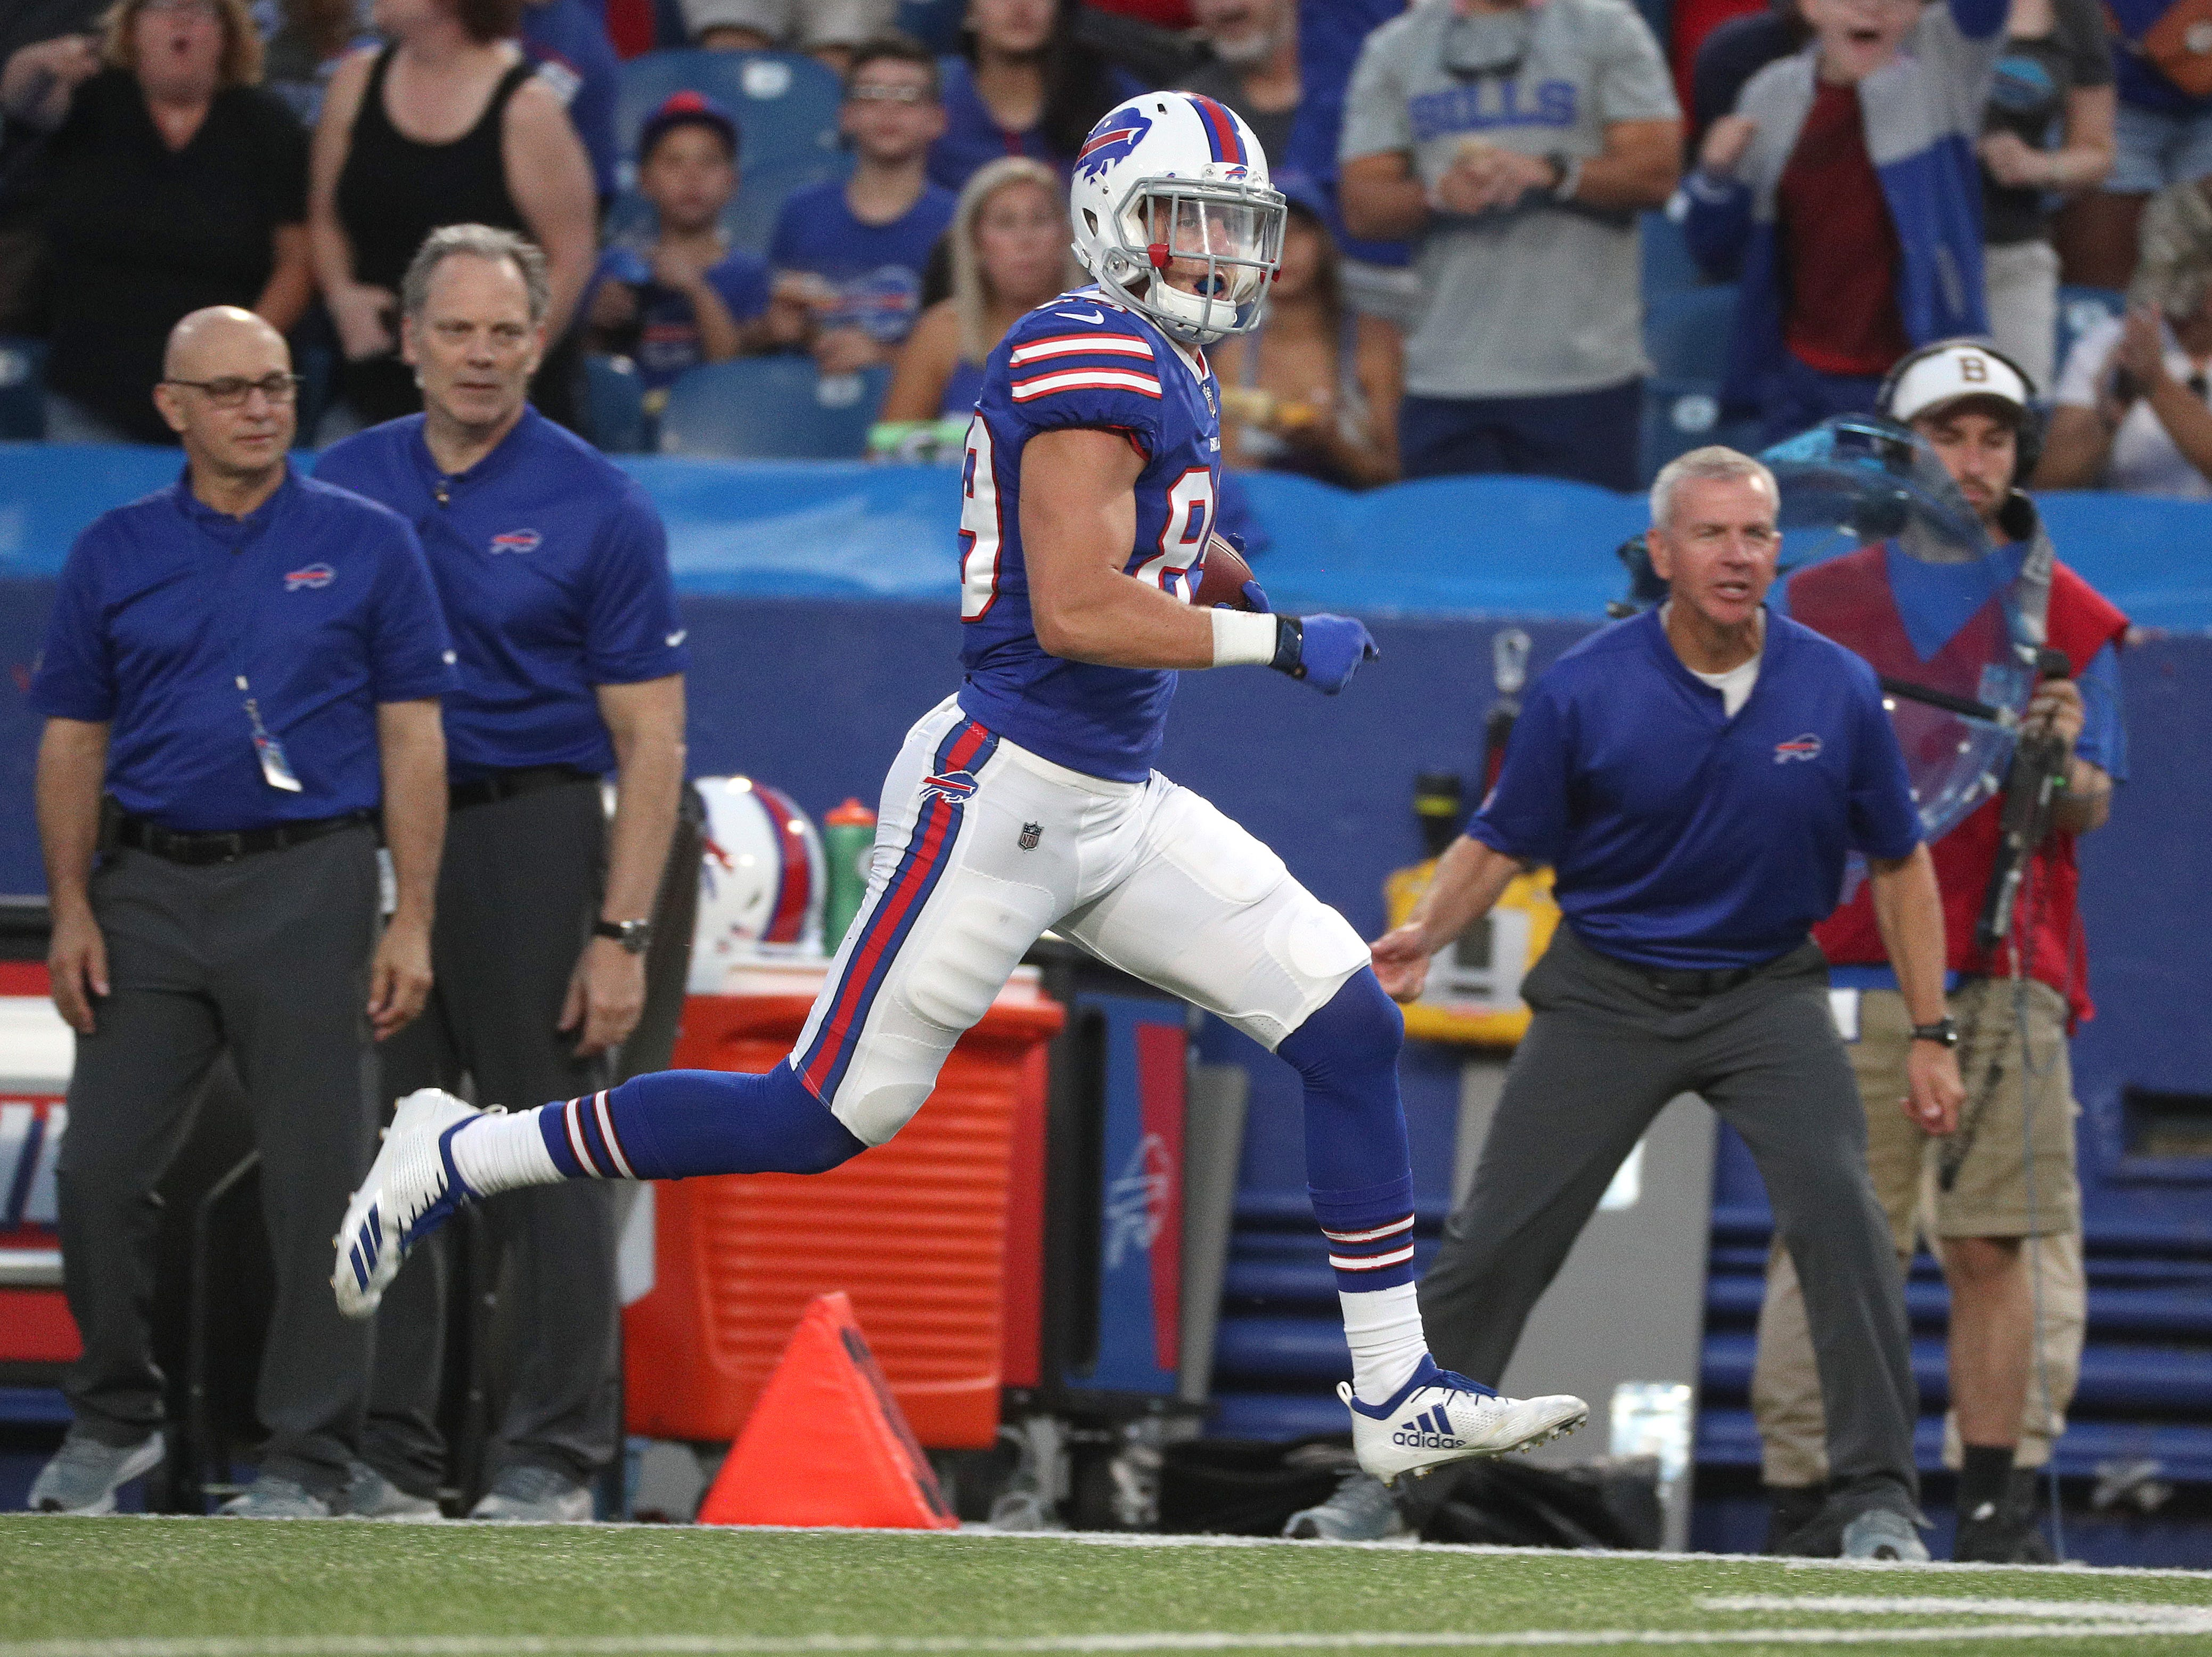 Bills receiver Brandon Reilly catches a 59-yard pass against Carolina.